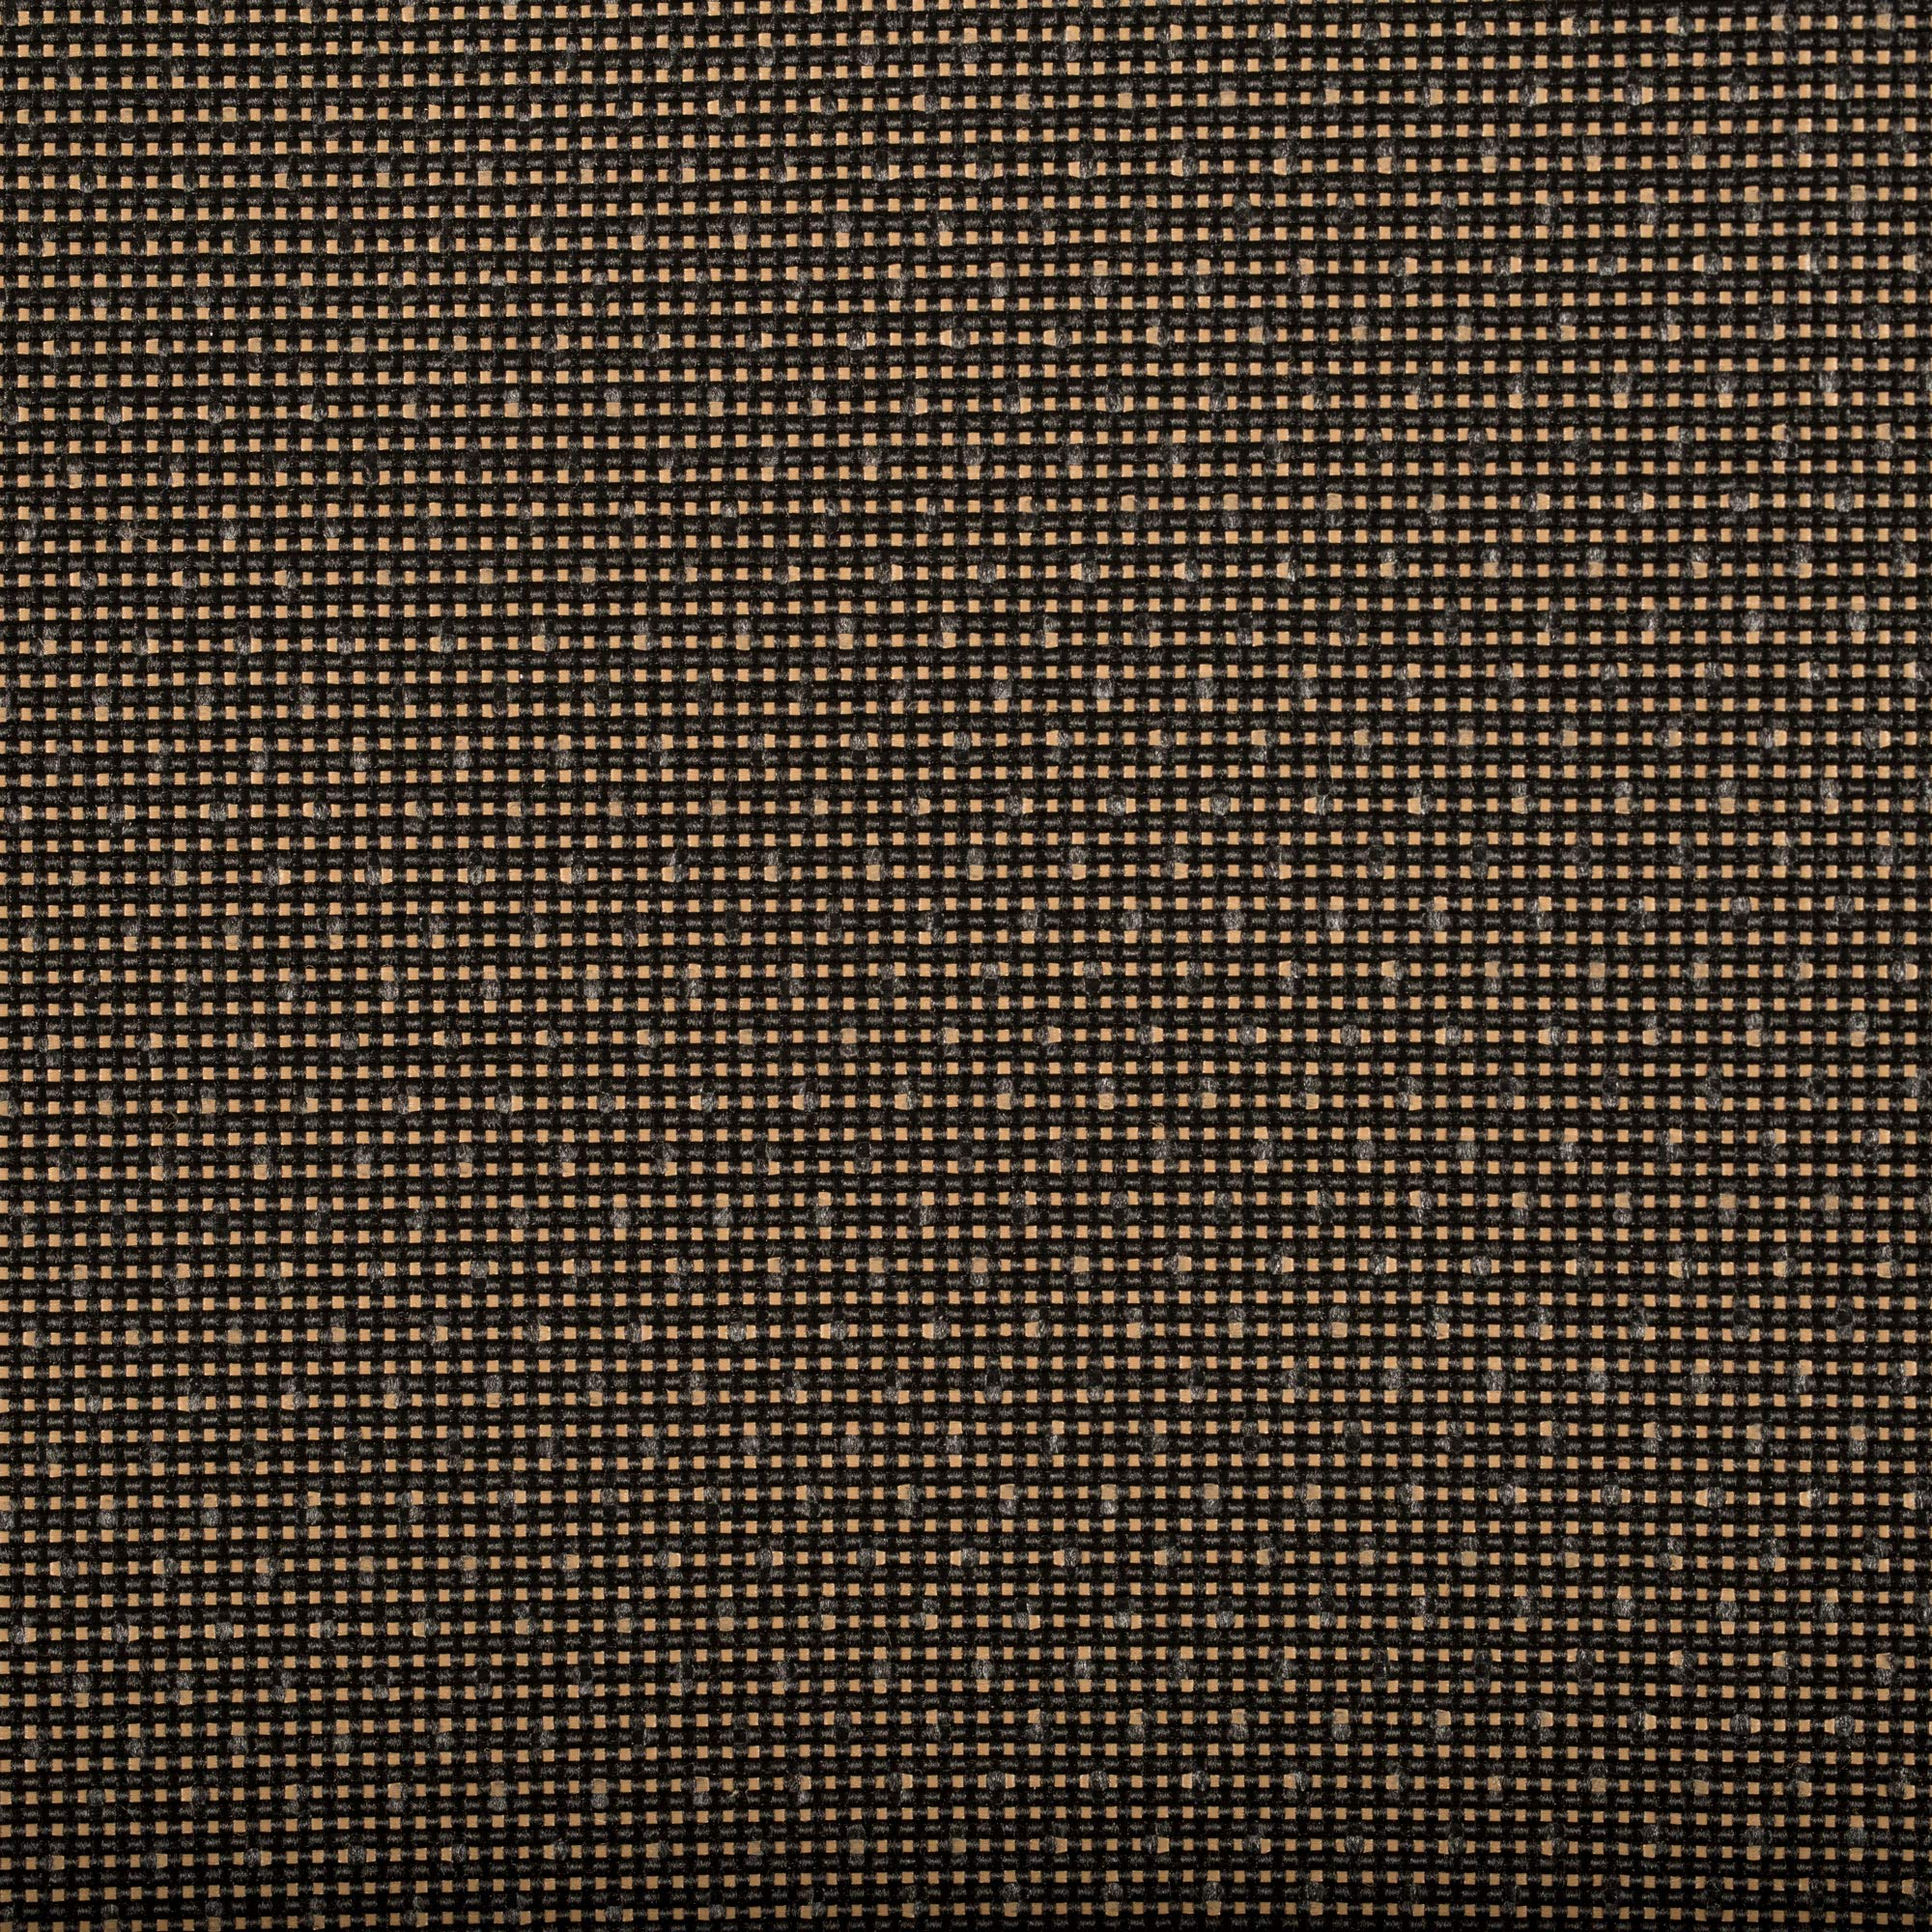 NeverWet Platinum Double Patio Chaise Lounge Cover, (Black and Tan Weave) by EmpireCovers (Image #1)